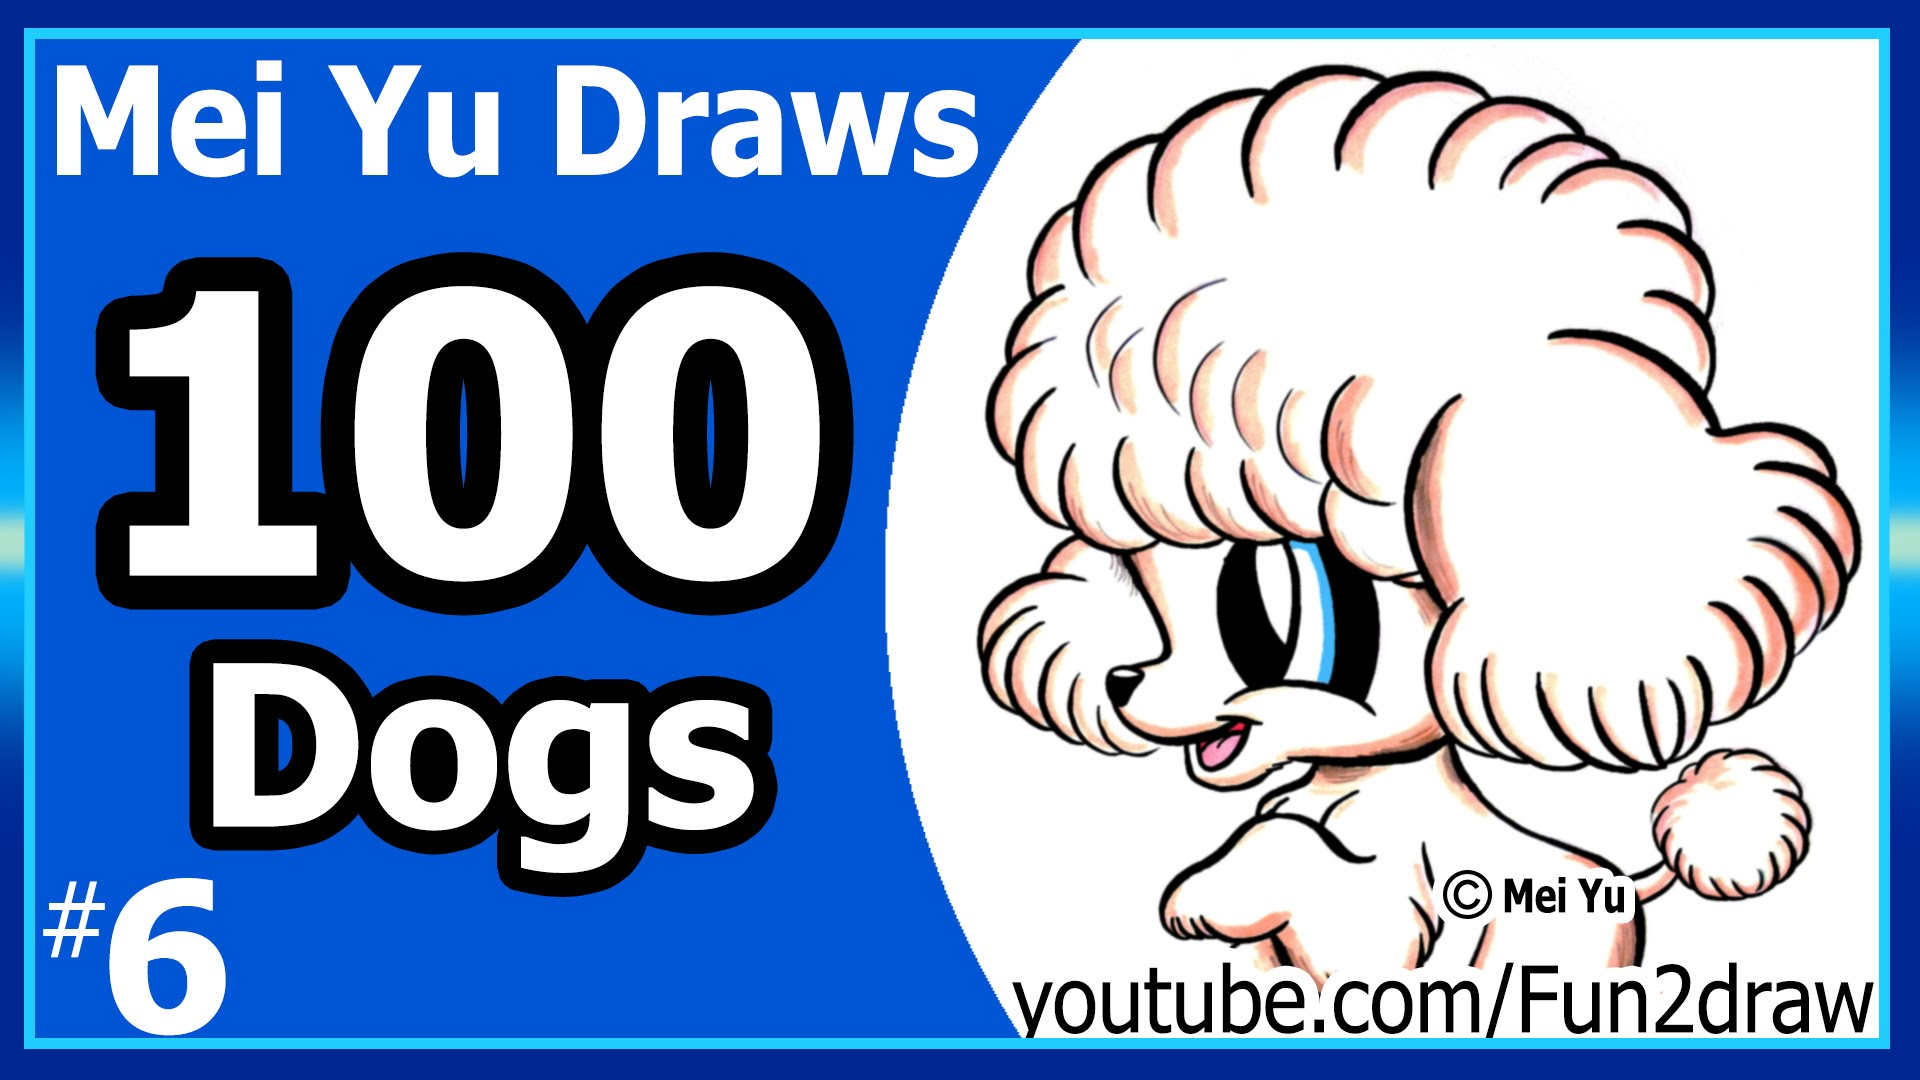 Drawn puppy mei yu Dogs YouTube Poodle Poodle Cute